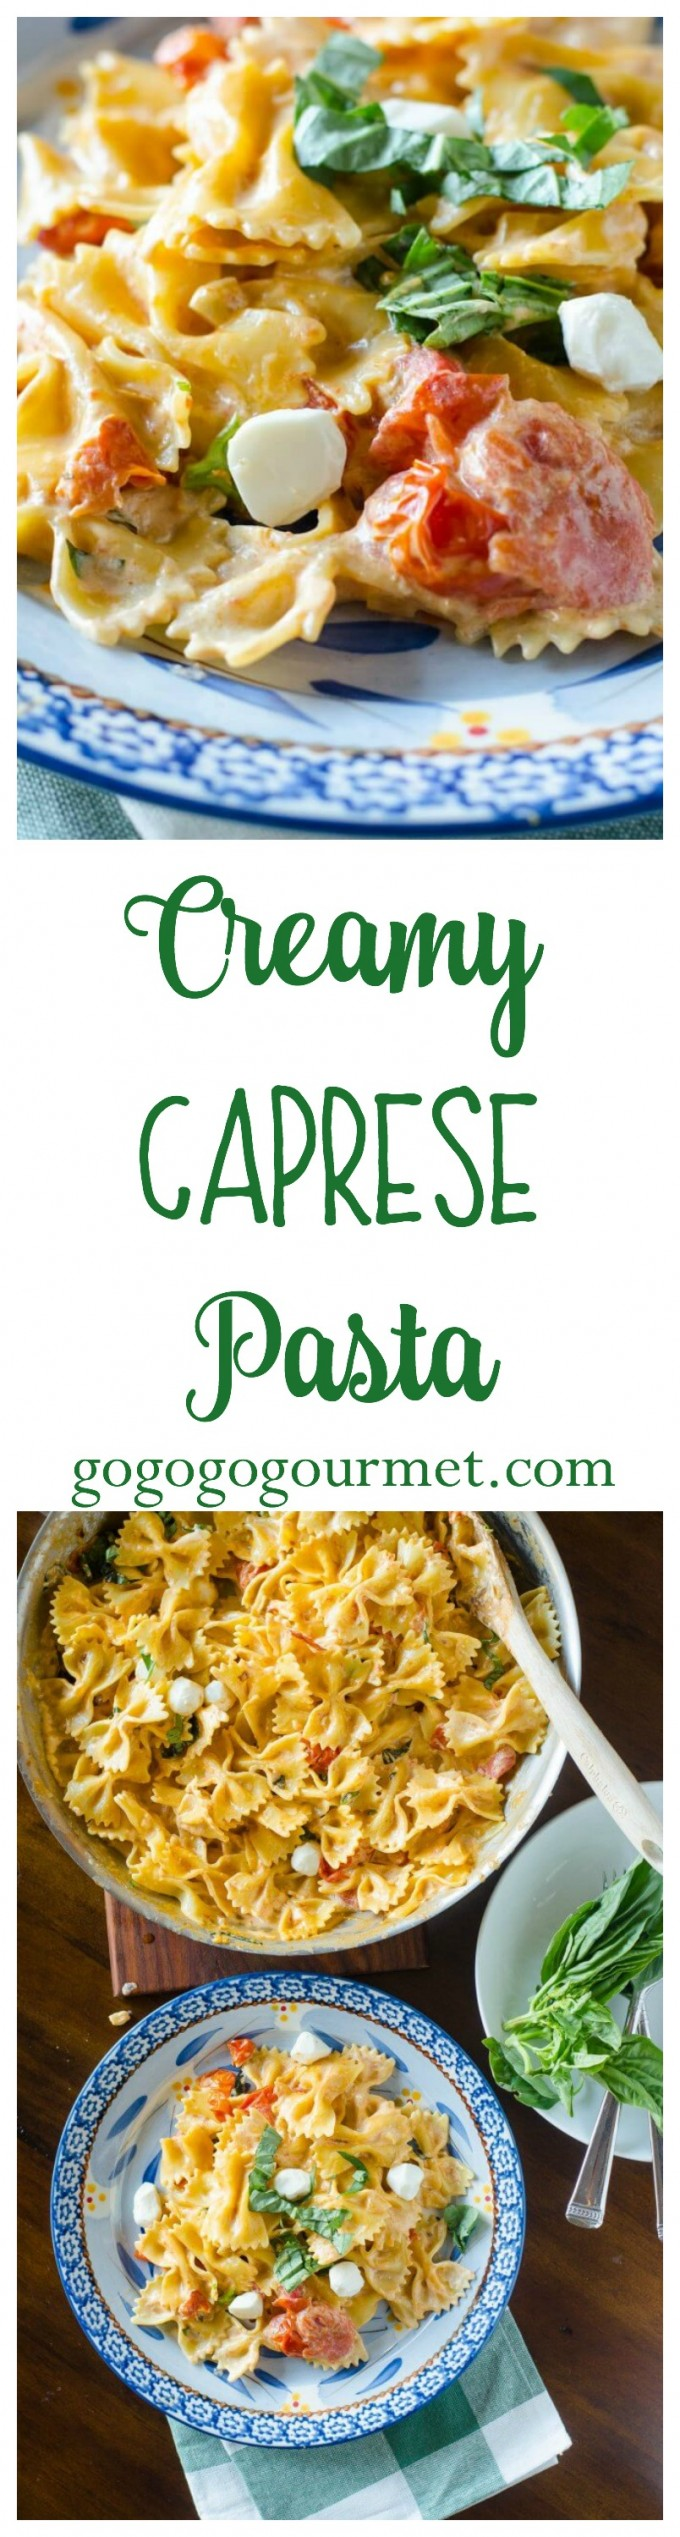 Fast and easy (and cheesy!!), this creamy tomato pasta dinner, loaded with fresh mozzarella and basil, is sure to be a hit with the whole family! Creamy Caprese Pasta | Go Go Go Gourmet @gogogogourmet via @gogogogourmet